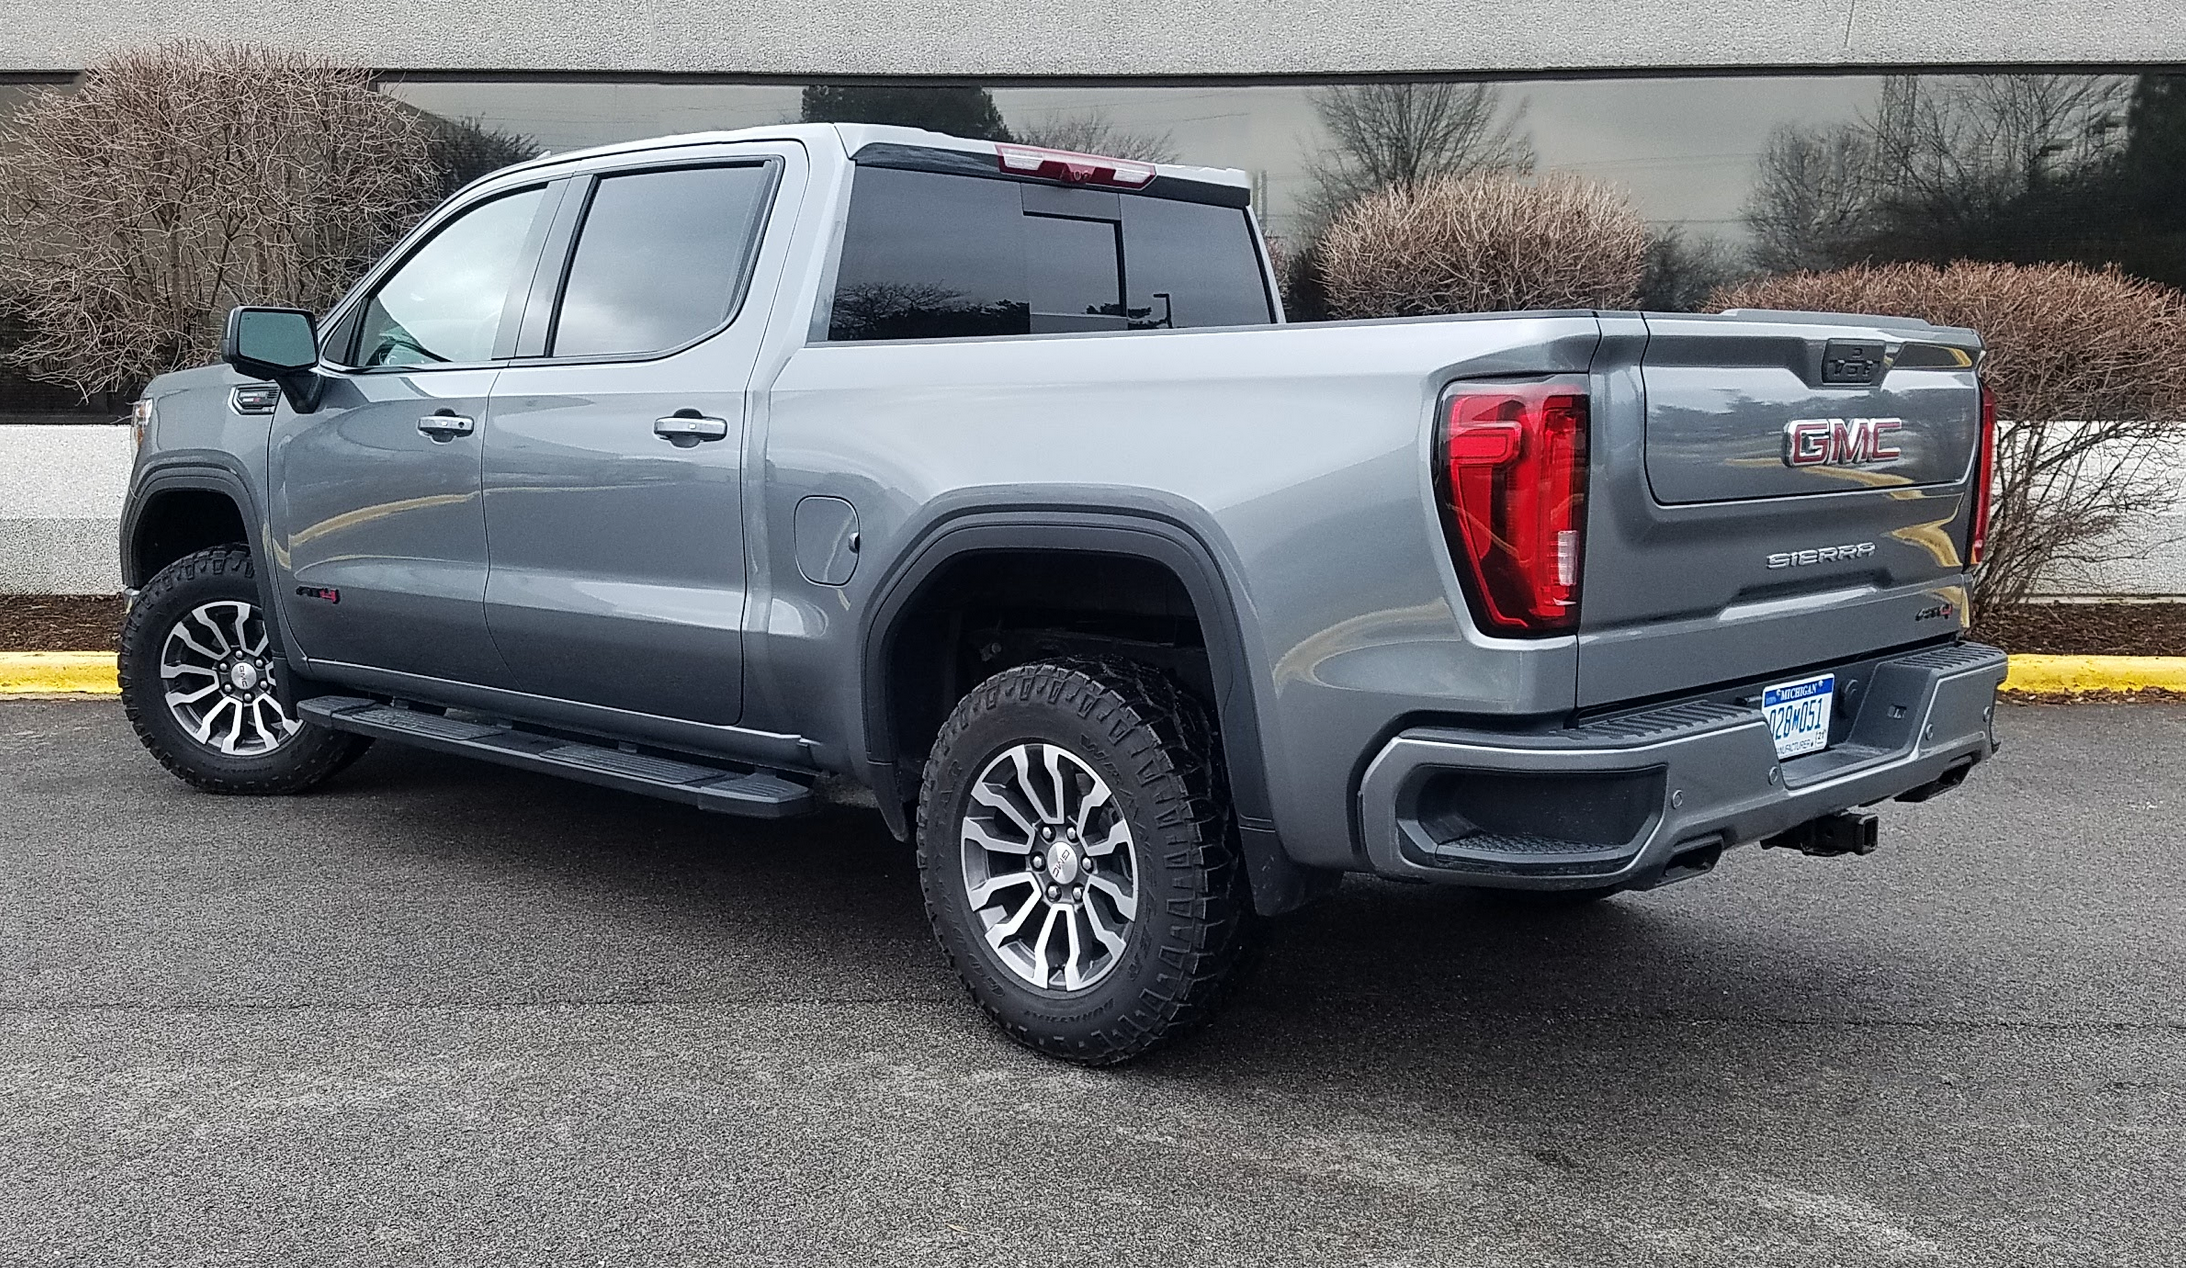 Quick Spin 2020 Gmc Sierra 1500 At4 Diesel The Daily Drive Consumer Guide The Daily Drive Consumer Guide